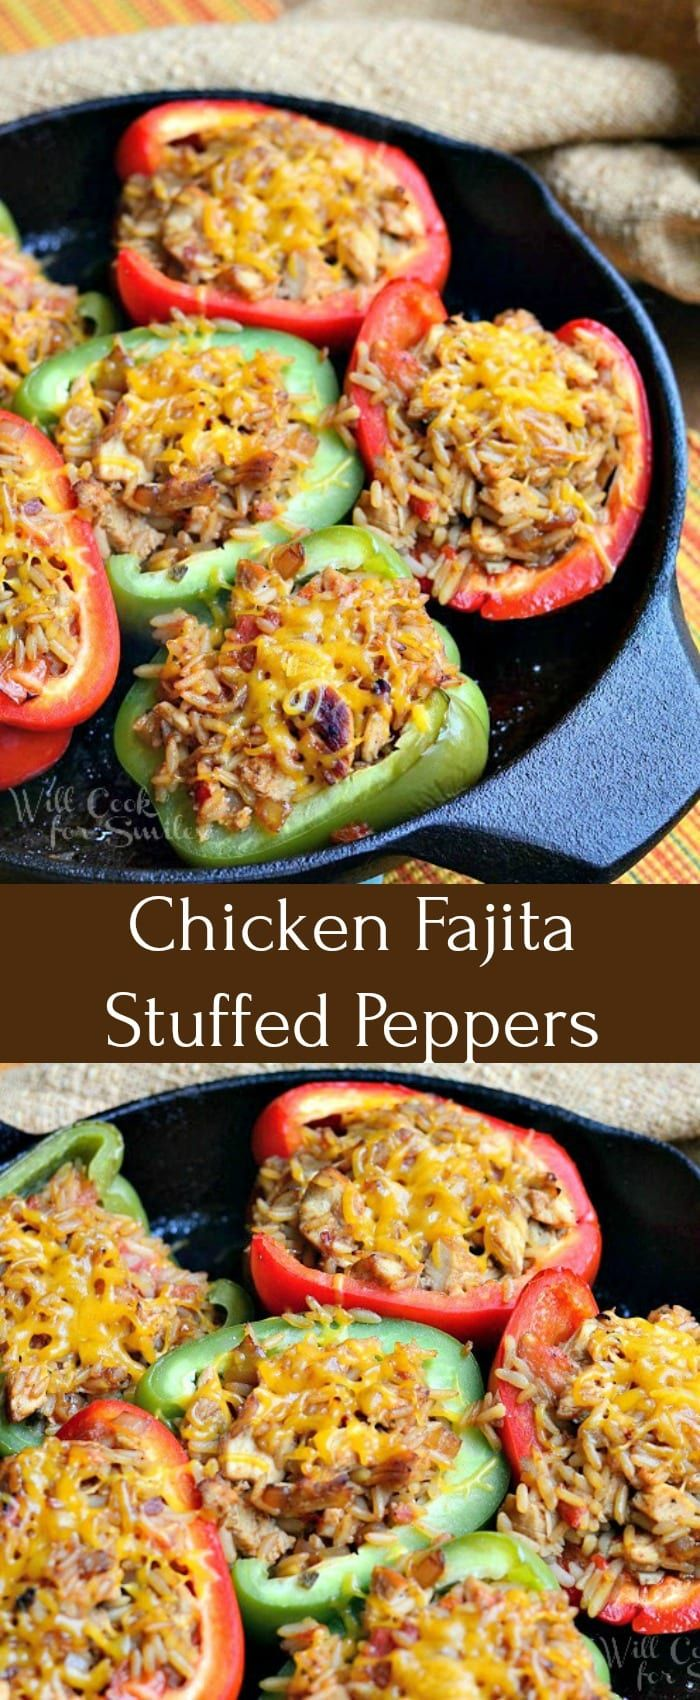 Chicken Fajita Stuffed Peppers Recipe Delicious Dinner Made With Red And Green Bell Peppers Stuffed With Fajita Marinated Grilled Chicken And Spa Pepers Peper